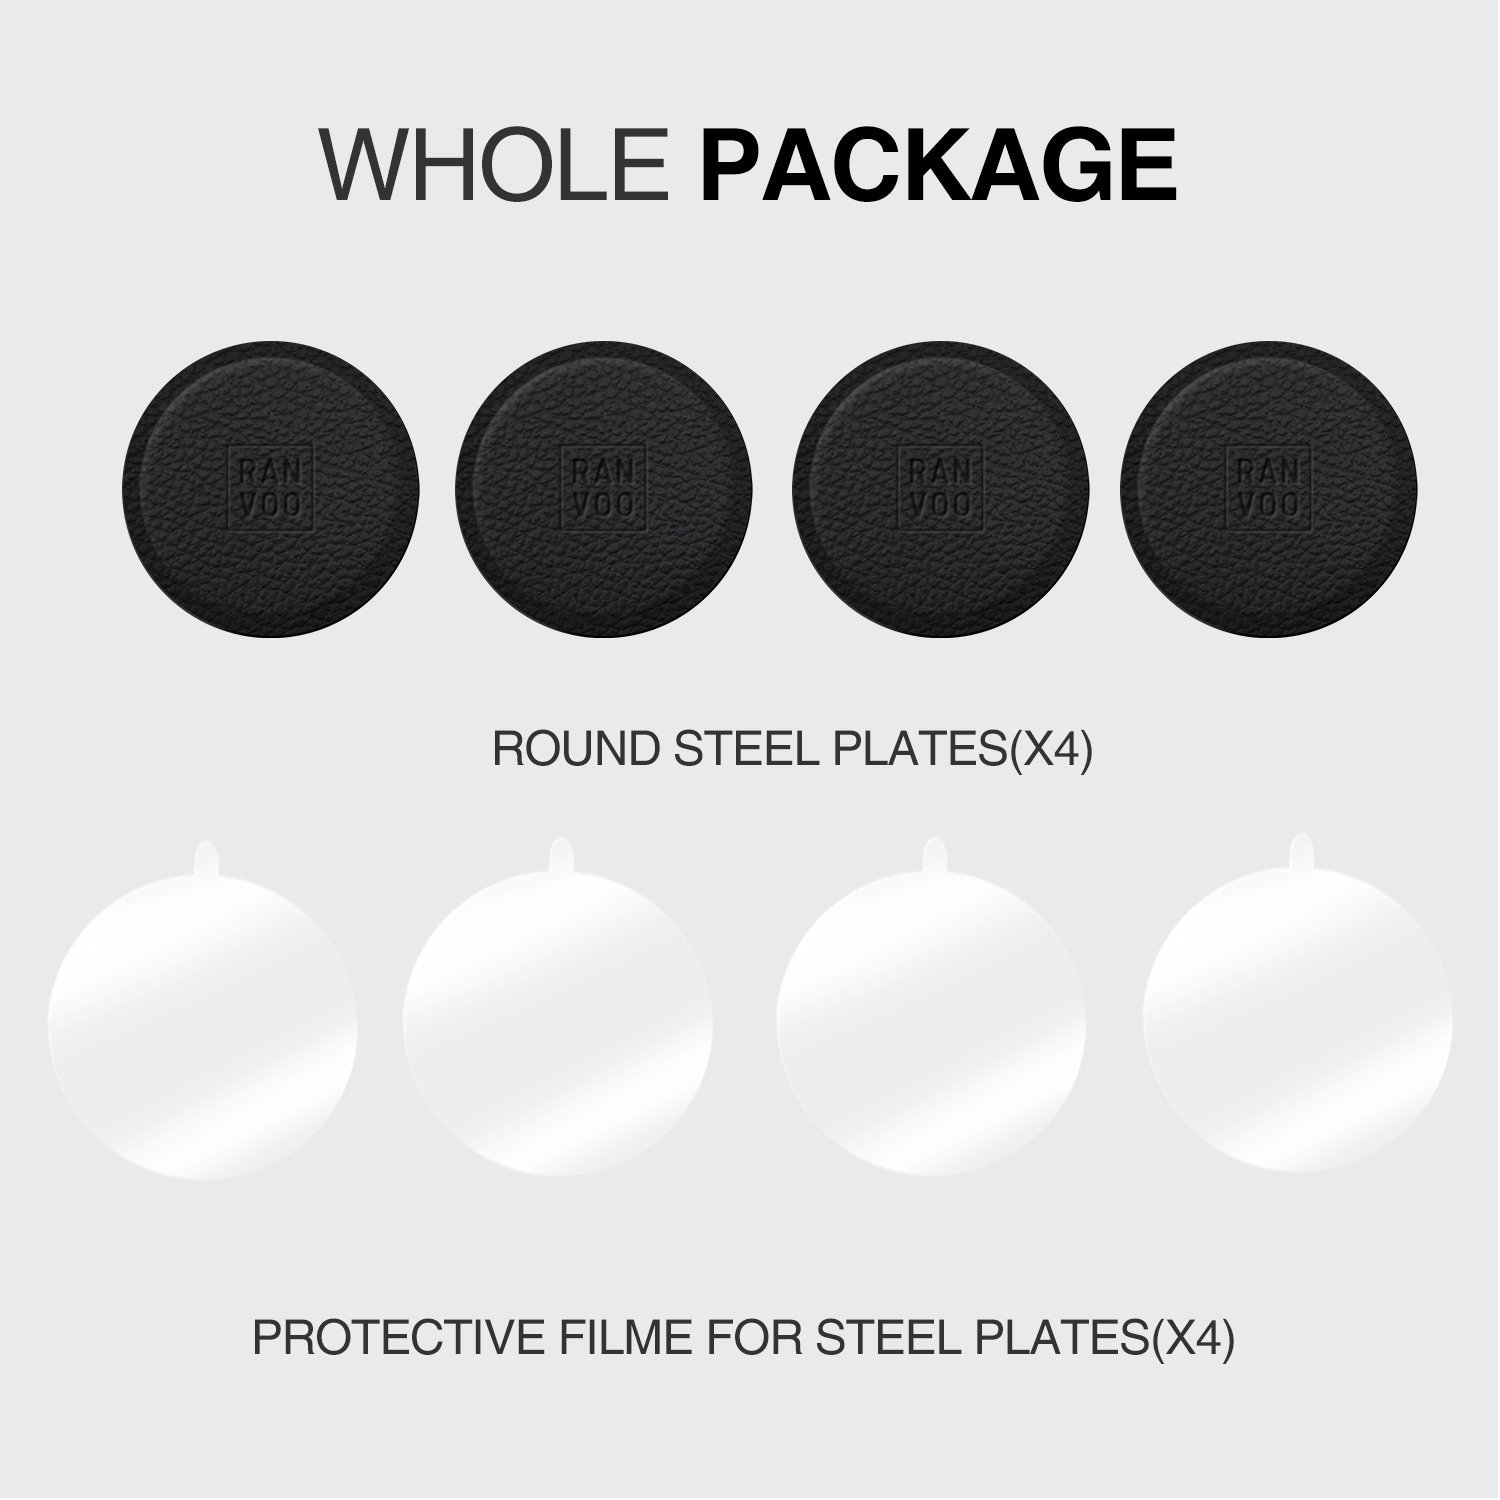 Genuine Leather Mount Metal Plate Kit, RANVOO Metal Plates for Magnetic Car Mount with 3M Adhesive - 4 Transparent Sticker & 4 Round Metal Plates (Compatible with RANVOO Magnetic Car Mounts)